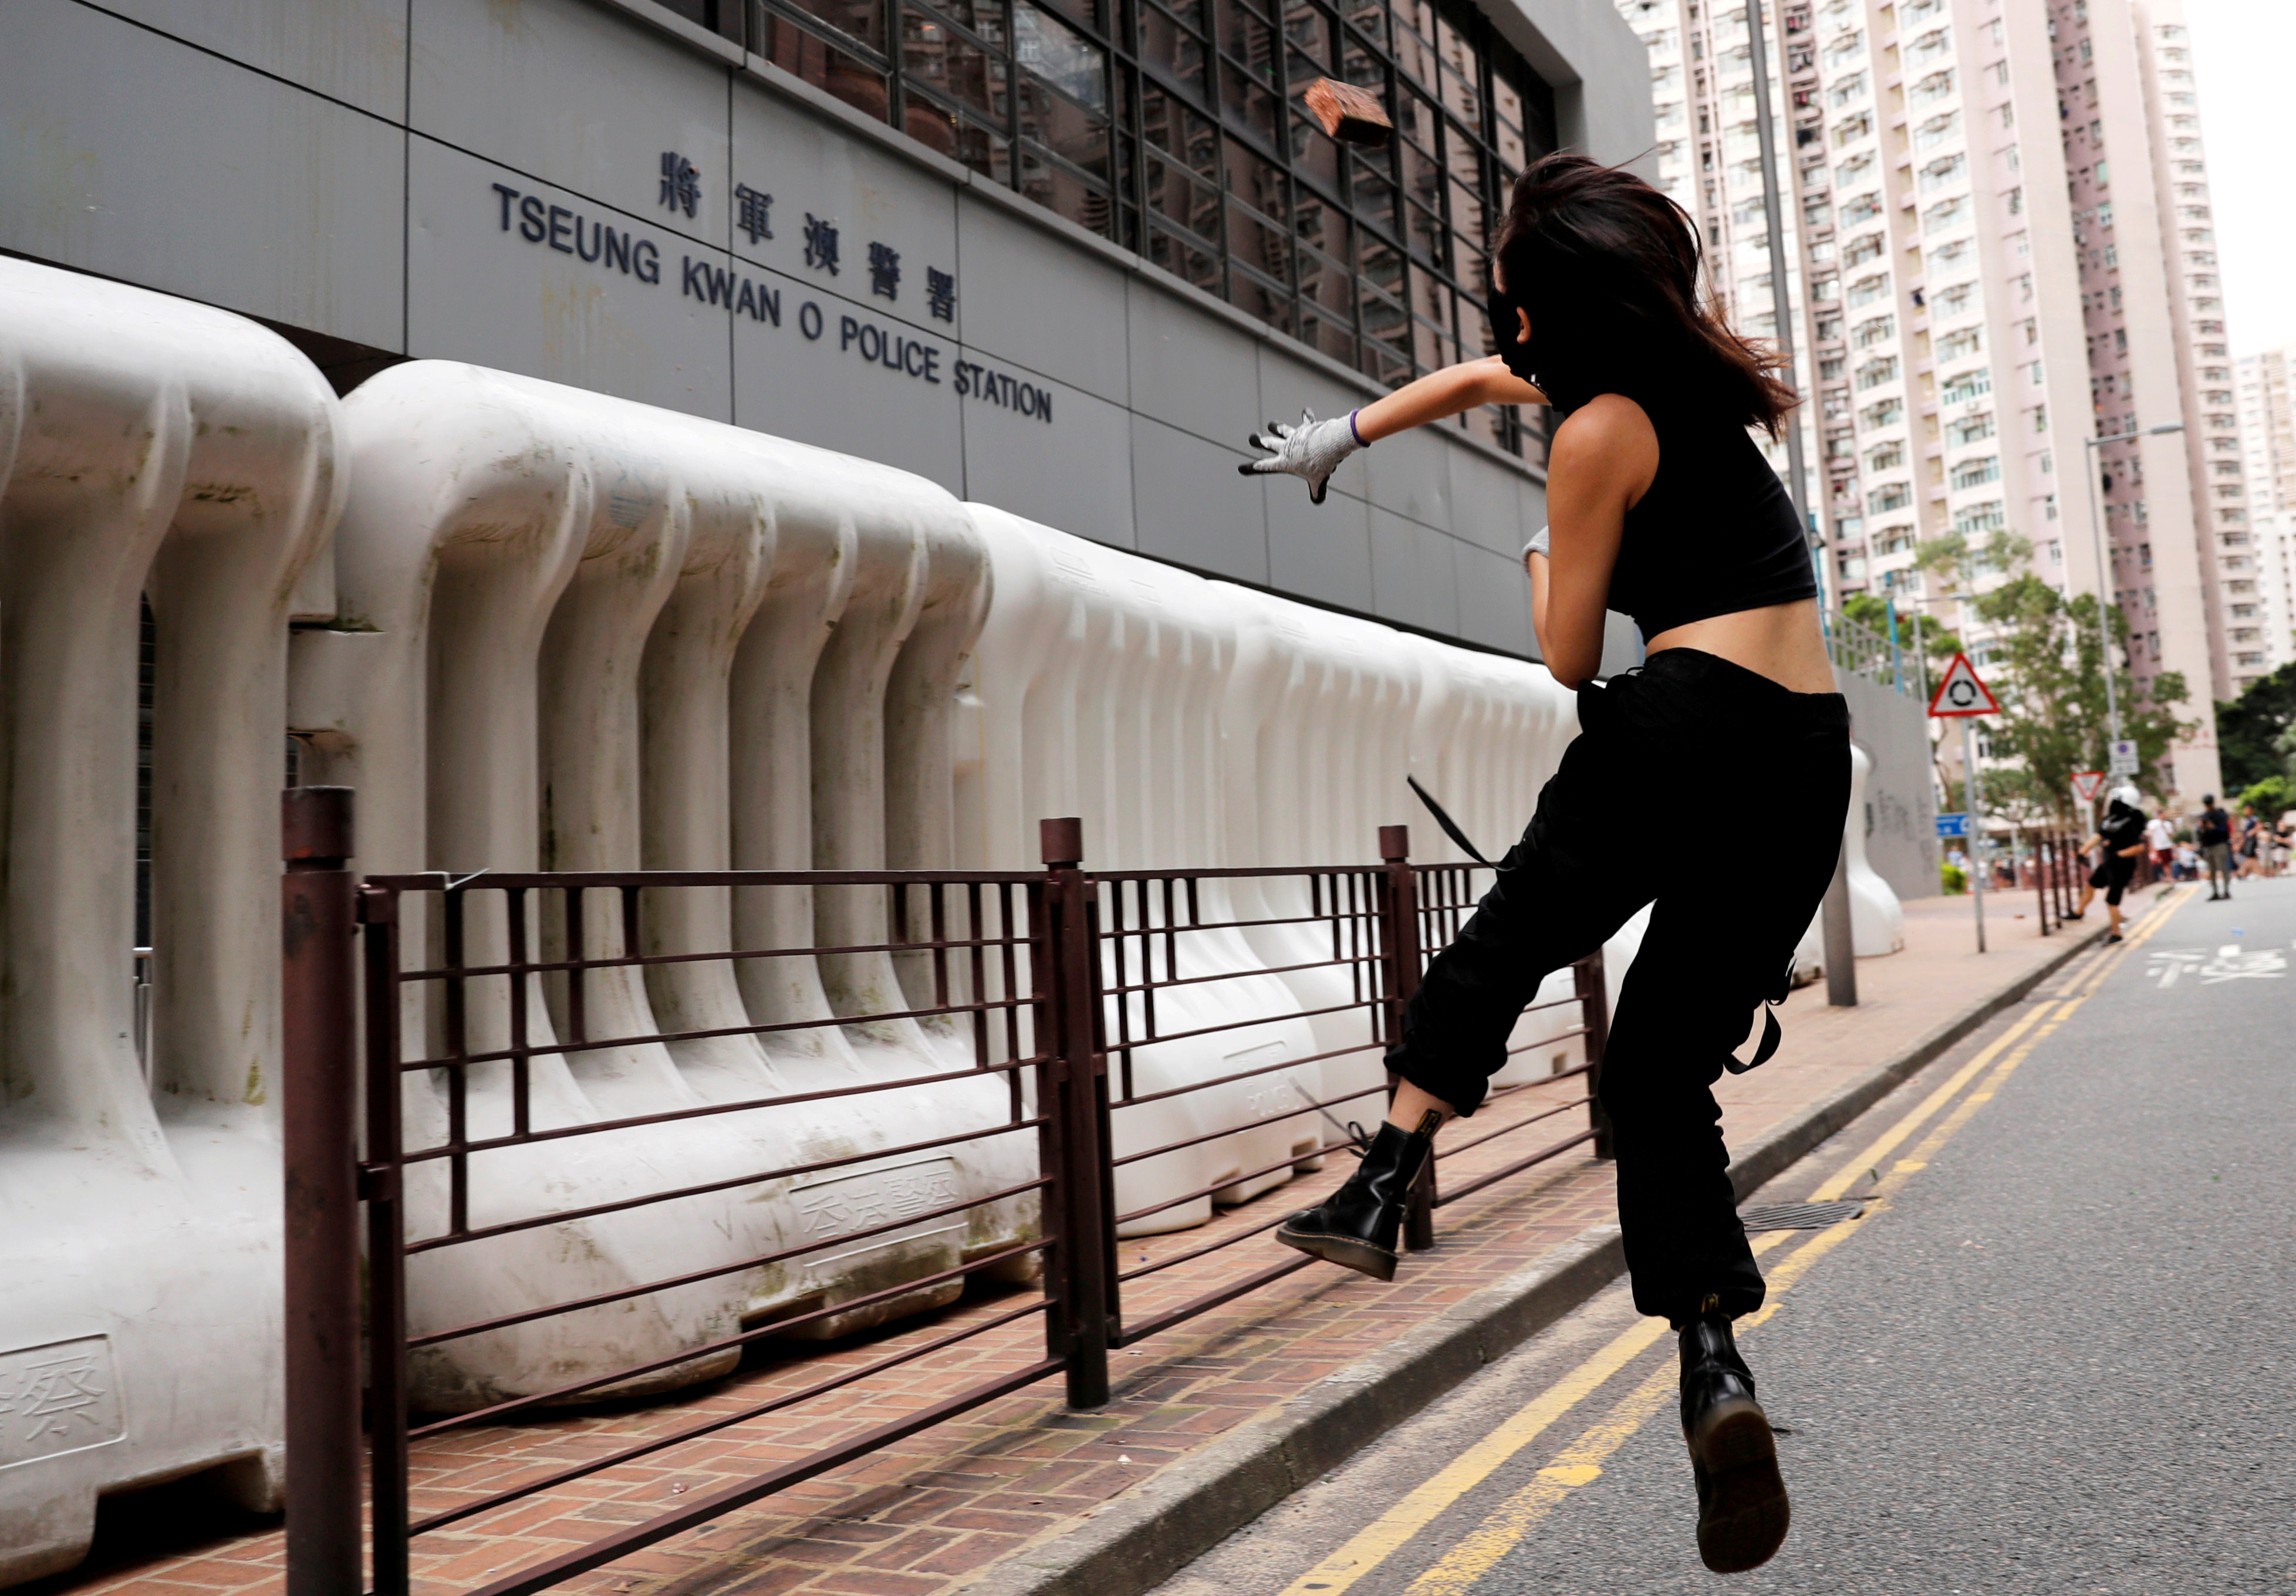 Meet the women on the front lines of Hong Kong's protest movement